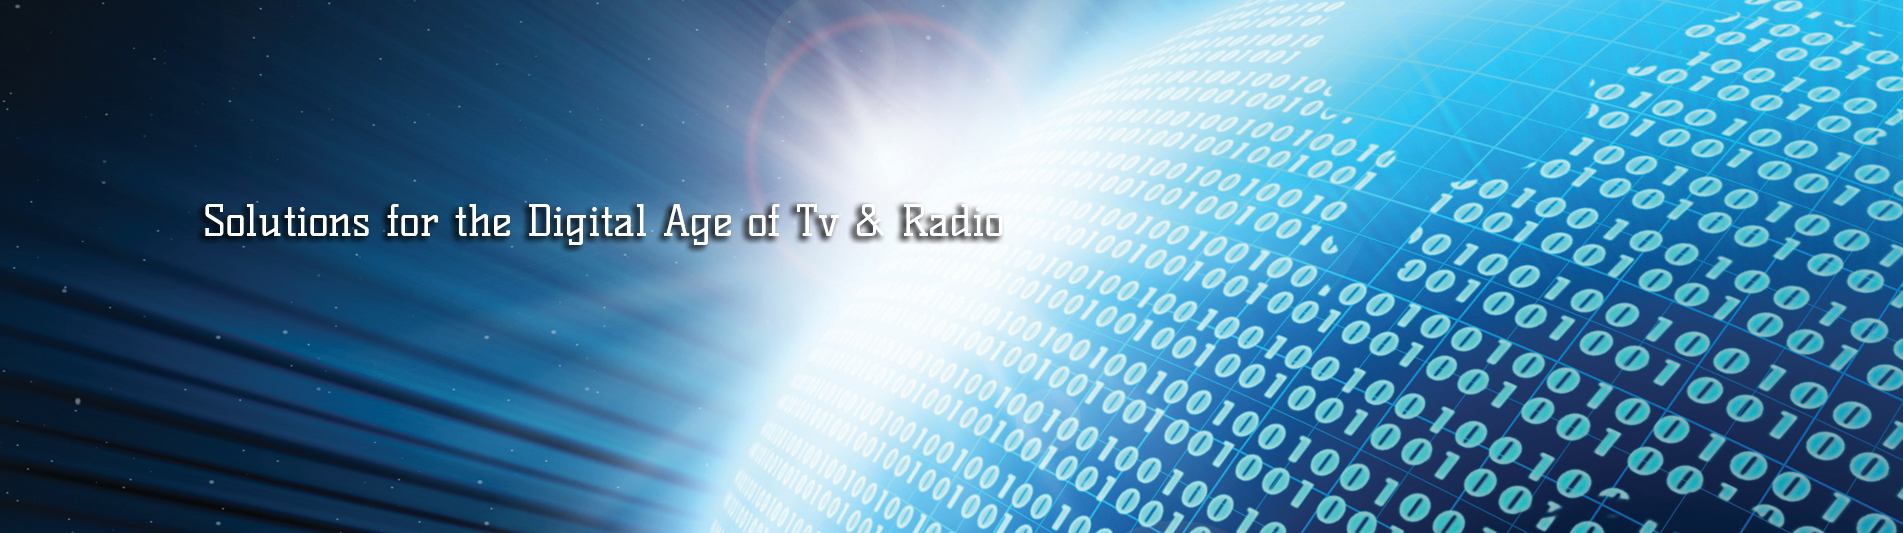 Solutions for the digital age of TV